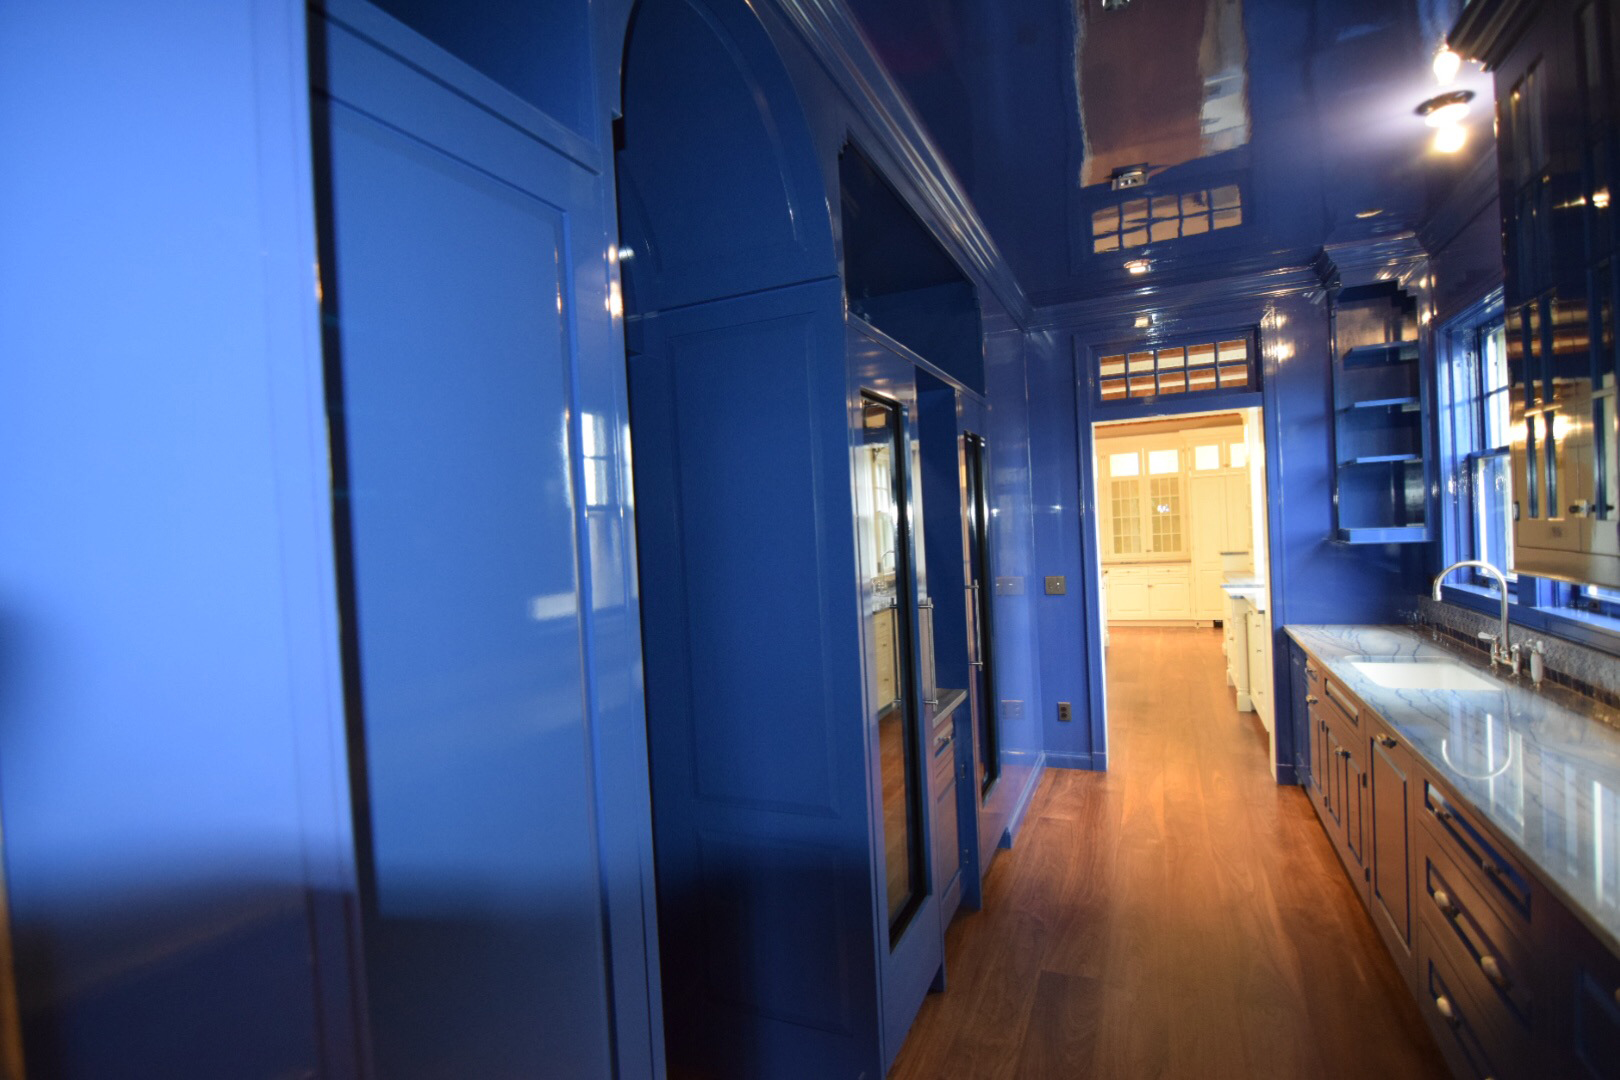 butlers-pantry-kitchen-in-high-gloss-blue-finish-from-floor-to-ceiling.jpg